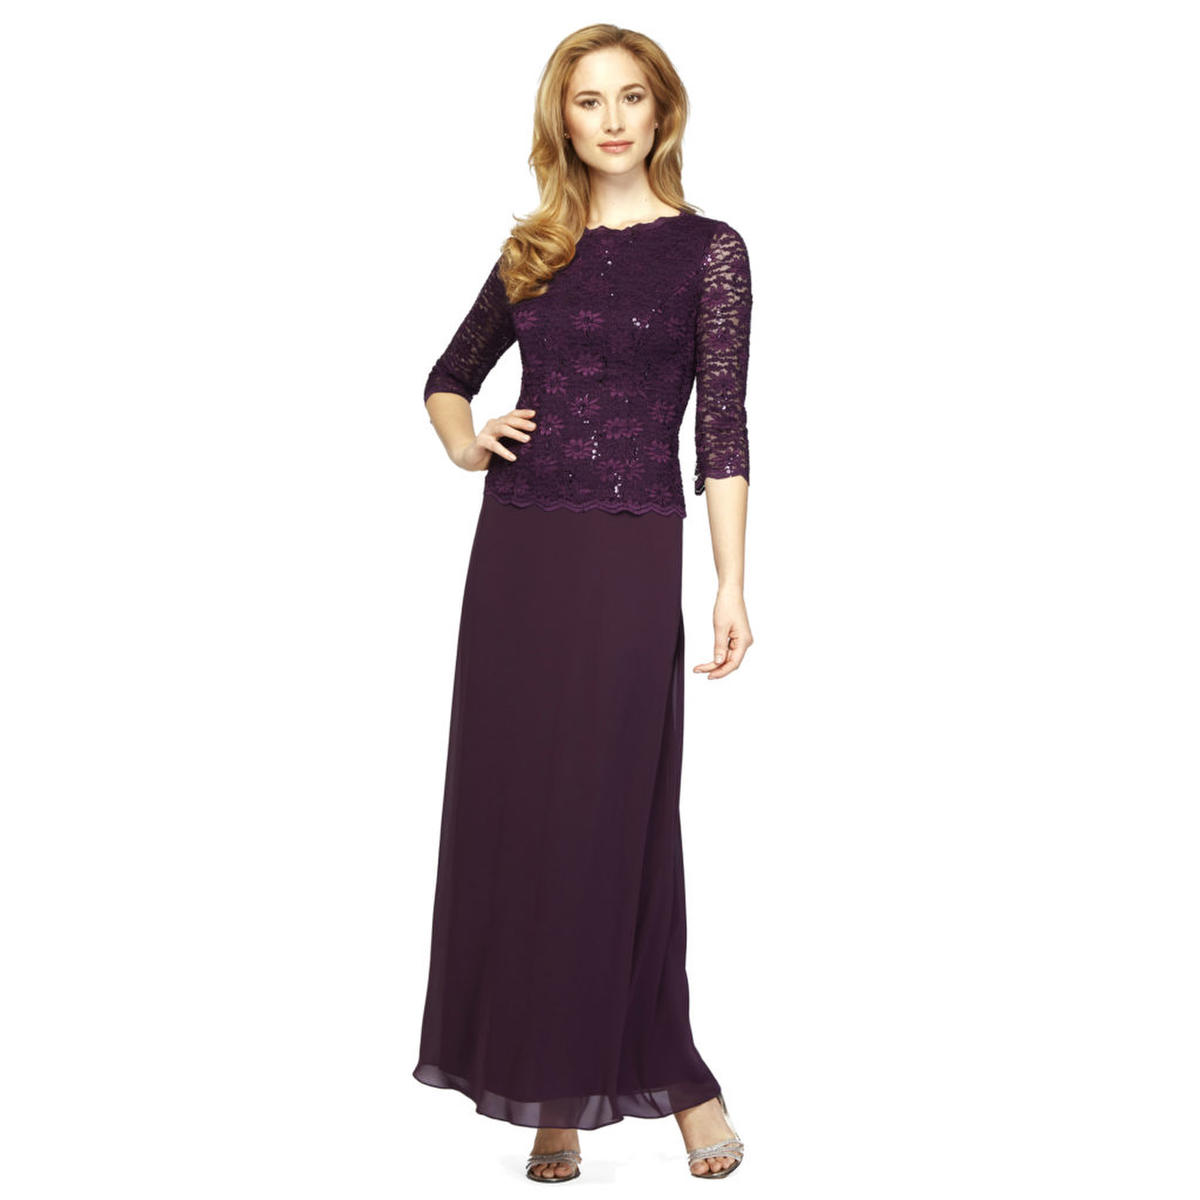 ALEX APPAREL GROUP INC - 3/4 Sleeve Lace Mock Top & Chiffon Gown